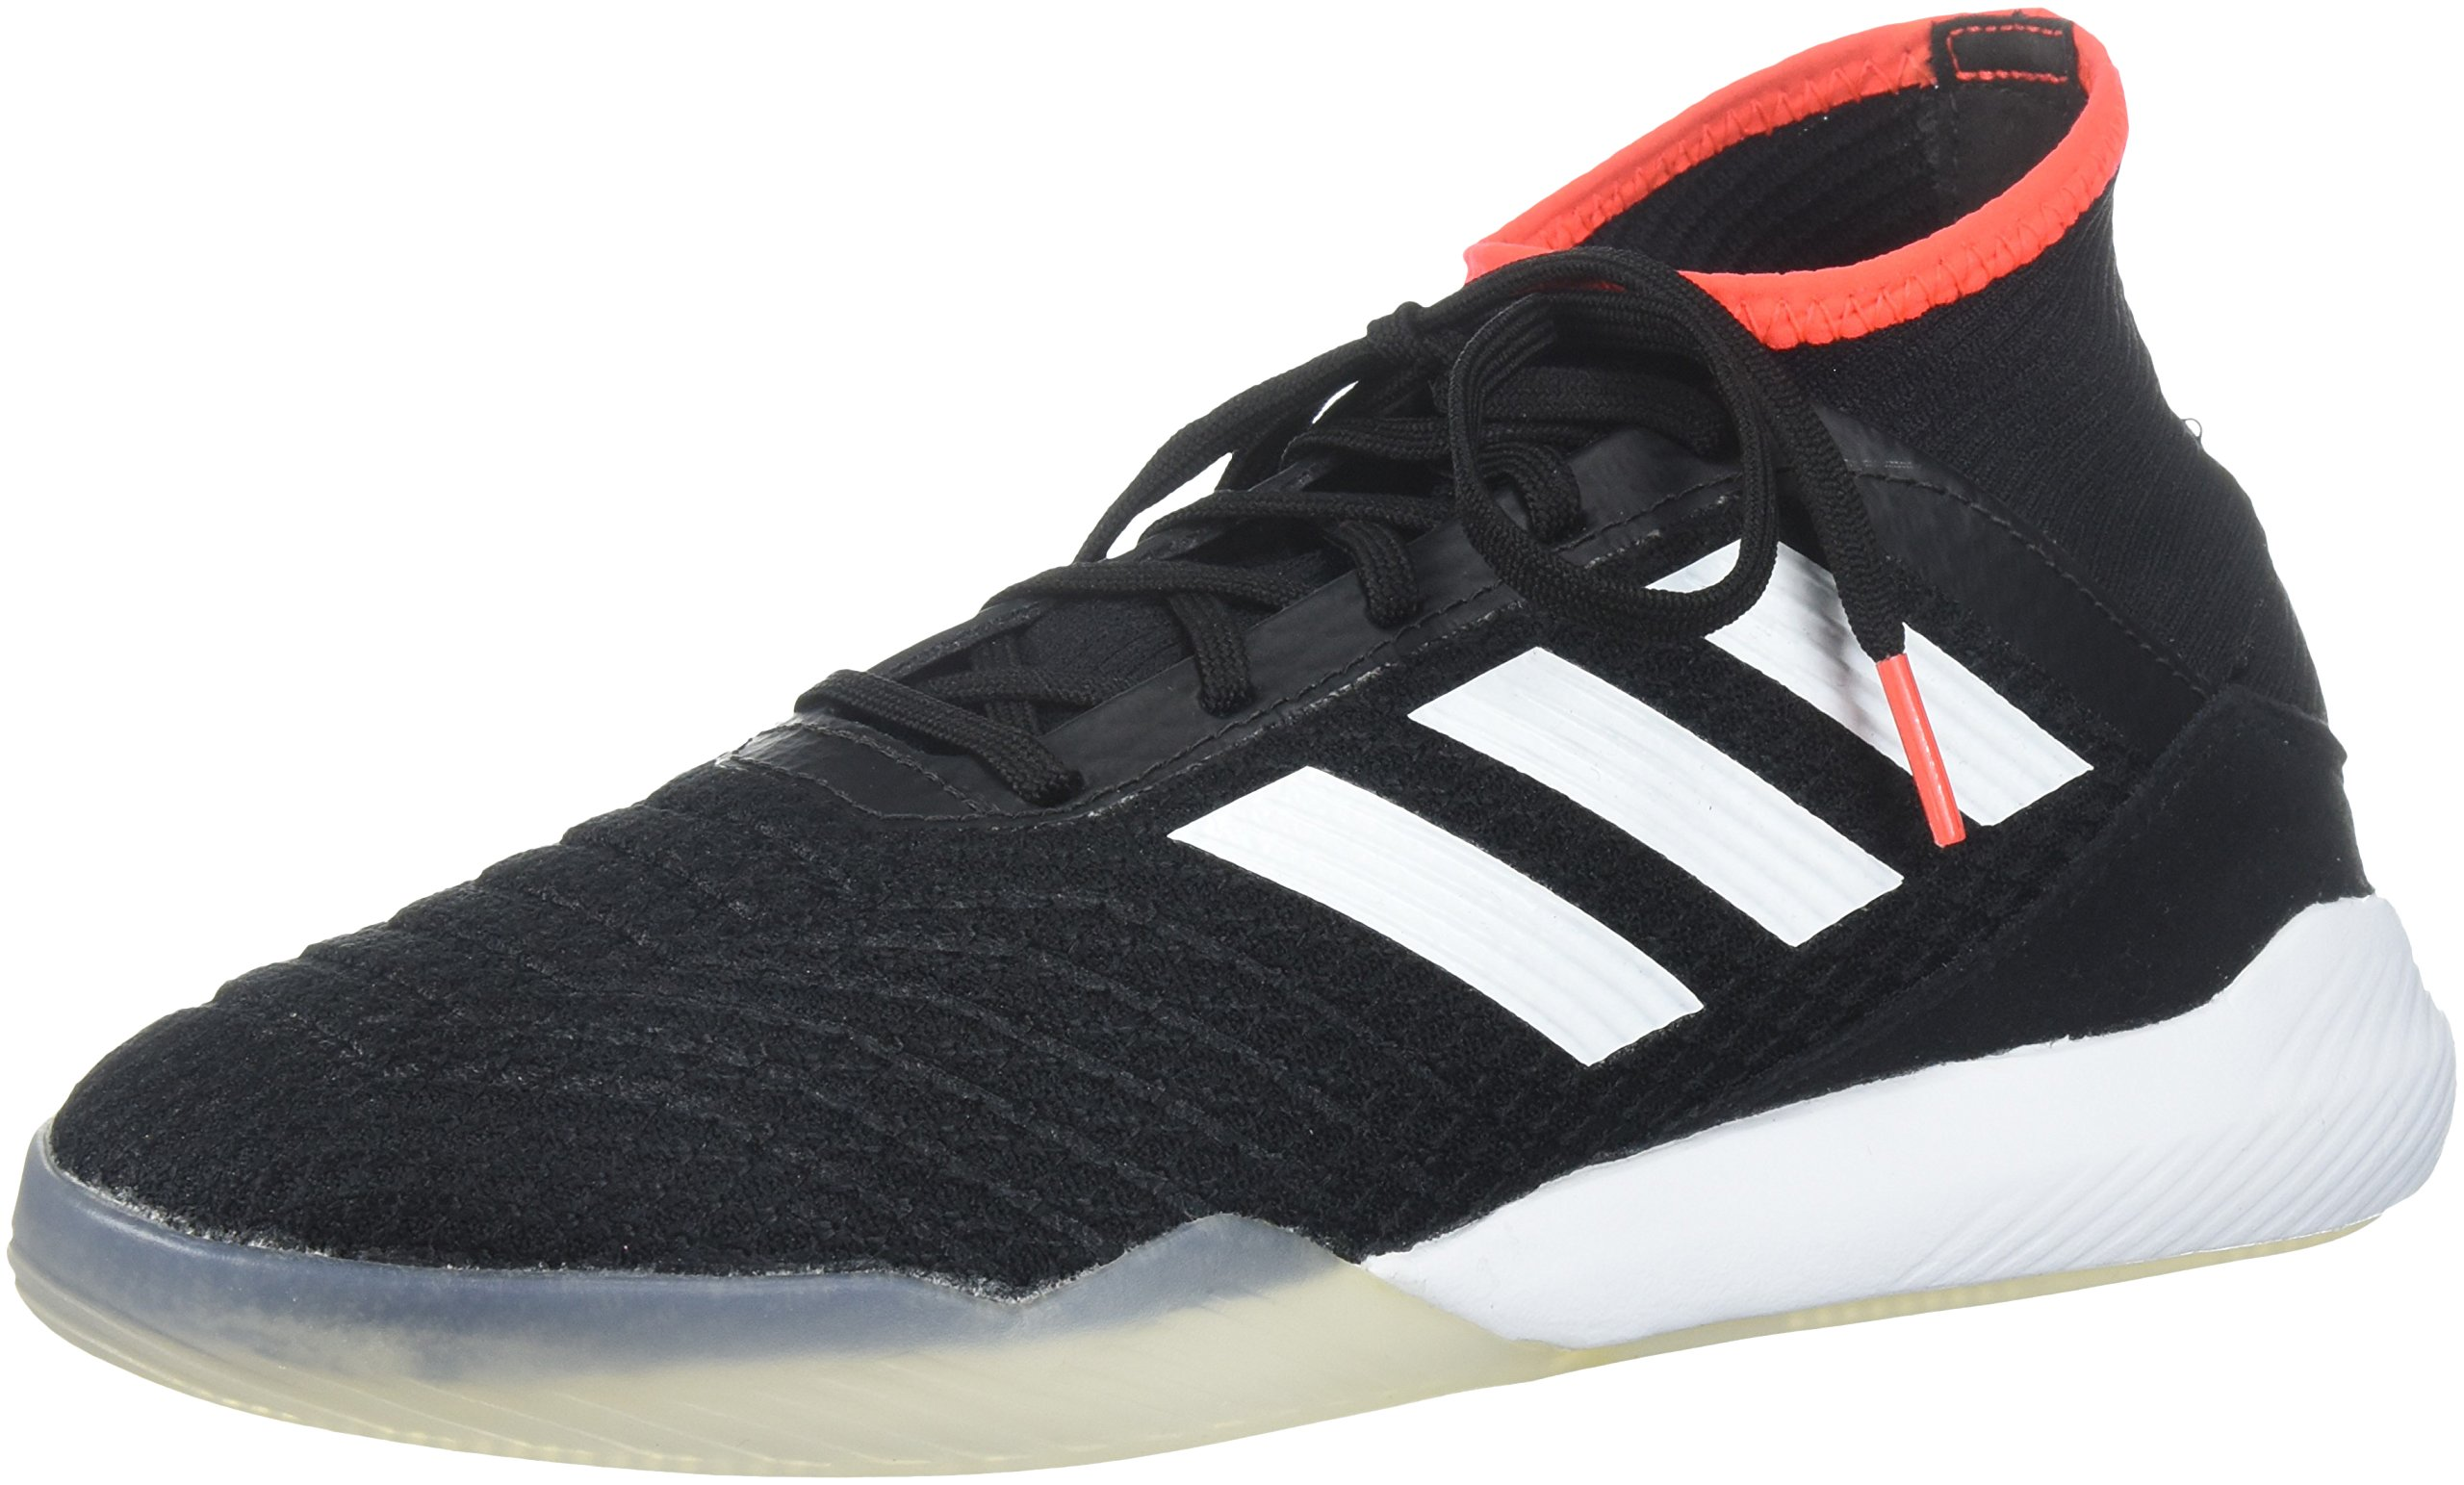 adidas Men's Football Predator Tango 18.3 TR Shoes,core Black/White/Solar red,10.5 M US